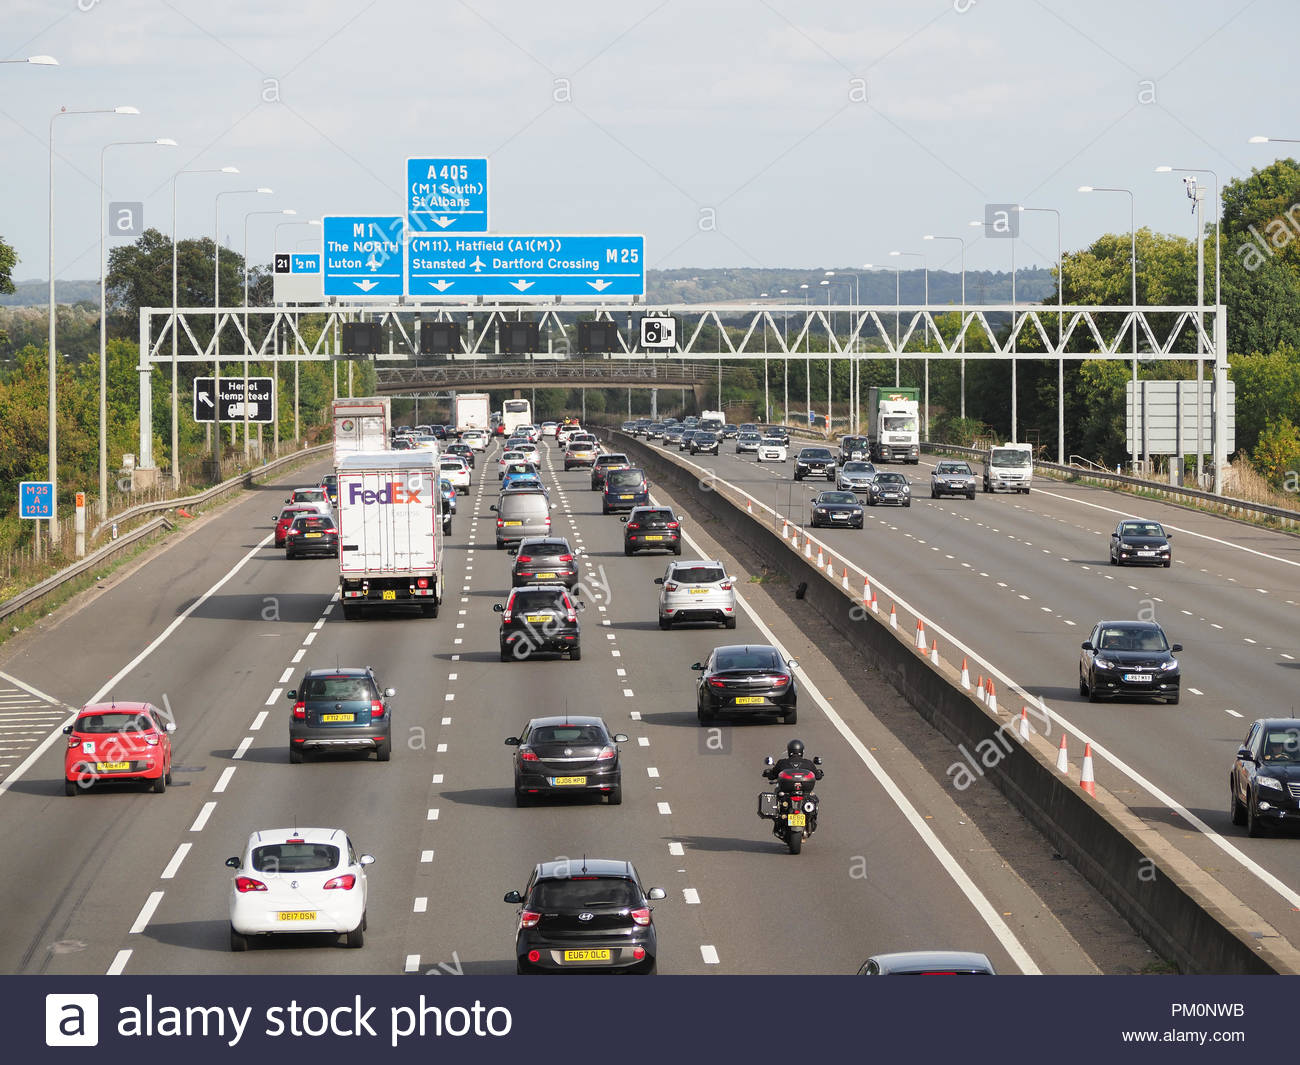 View looking down on traffic on the M25 London orbital motorway near junction 21 in Hertfordshire - Stock Image